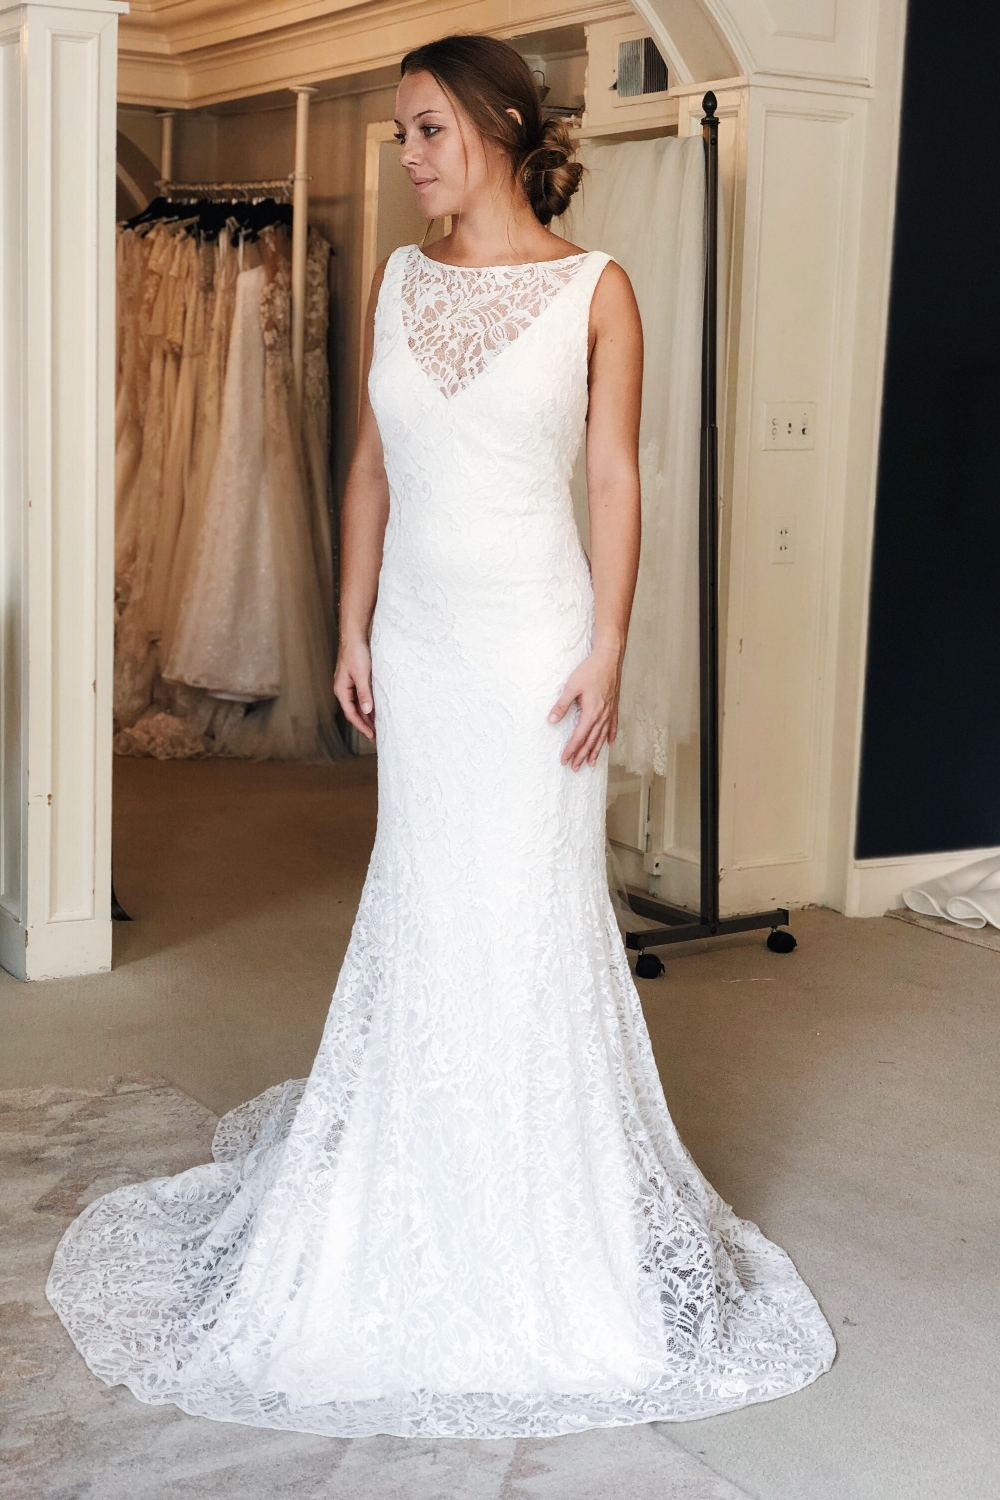 theia Daphne - was: $1800our price: $1260sale price: $1071